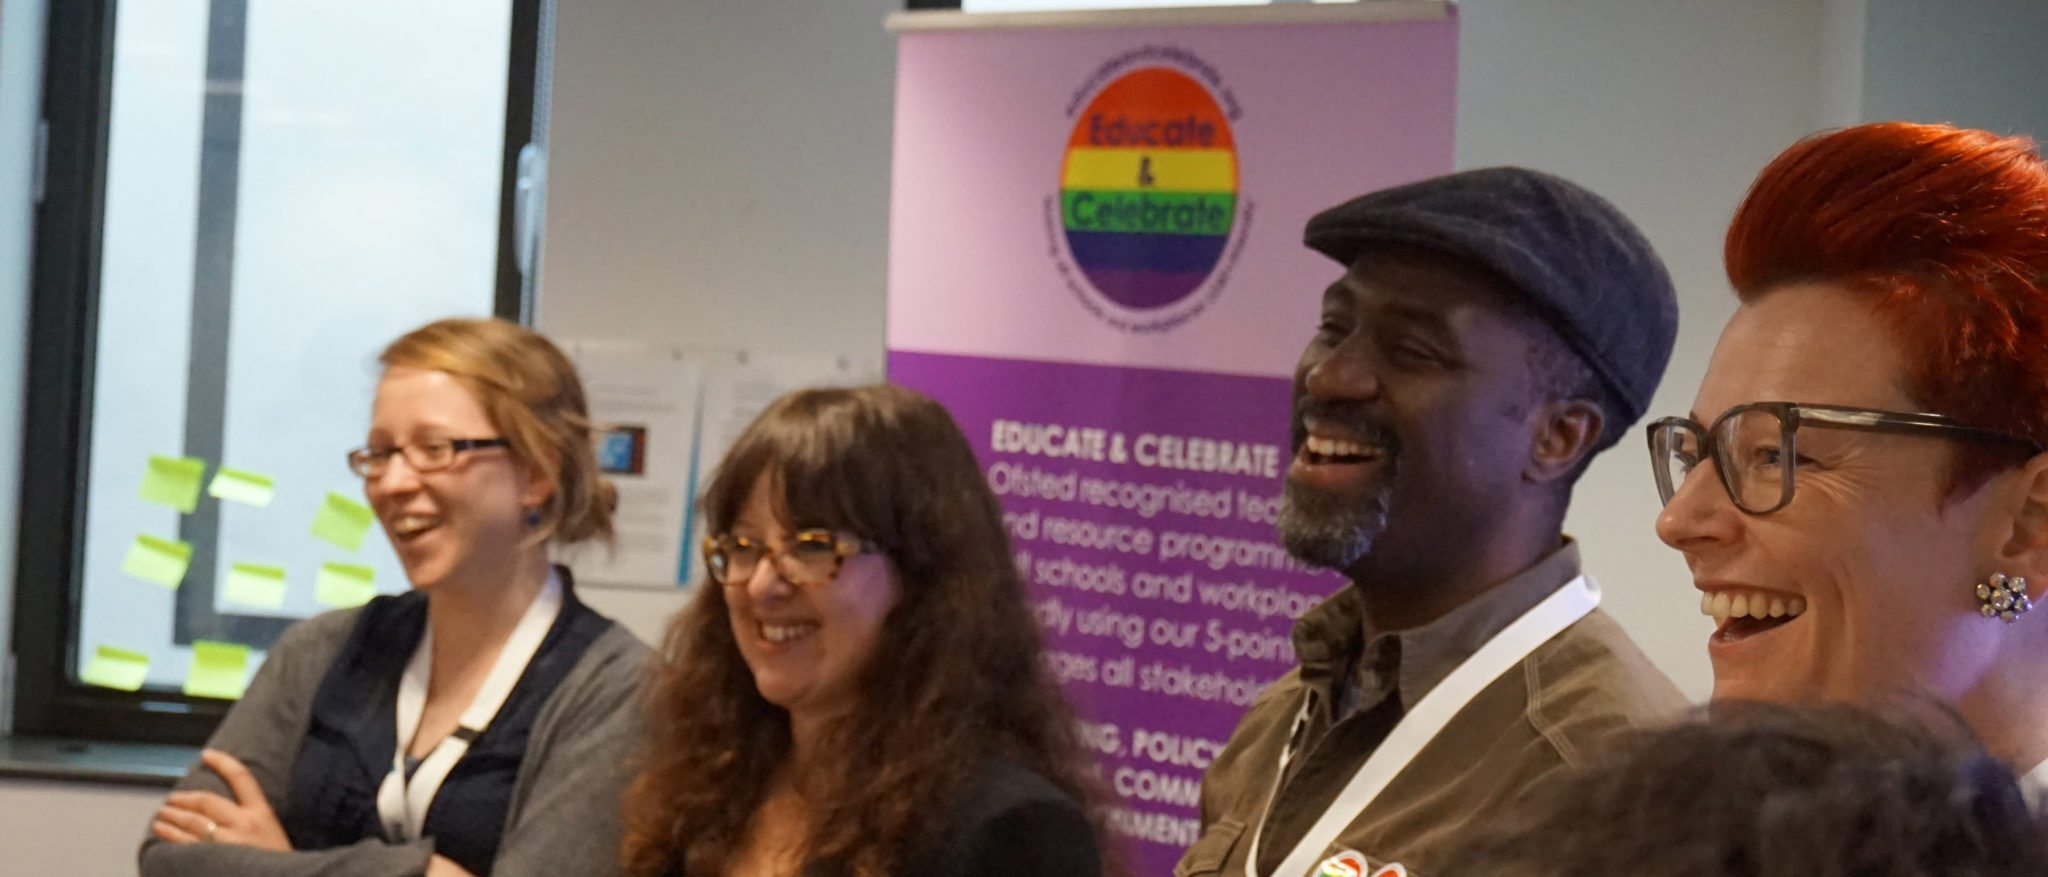 EY supports CI Pride with educational sponsorship - Liberate